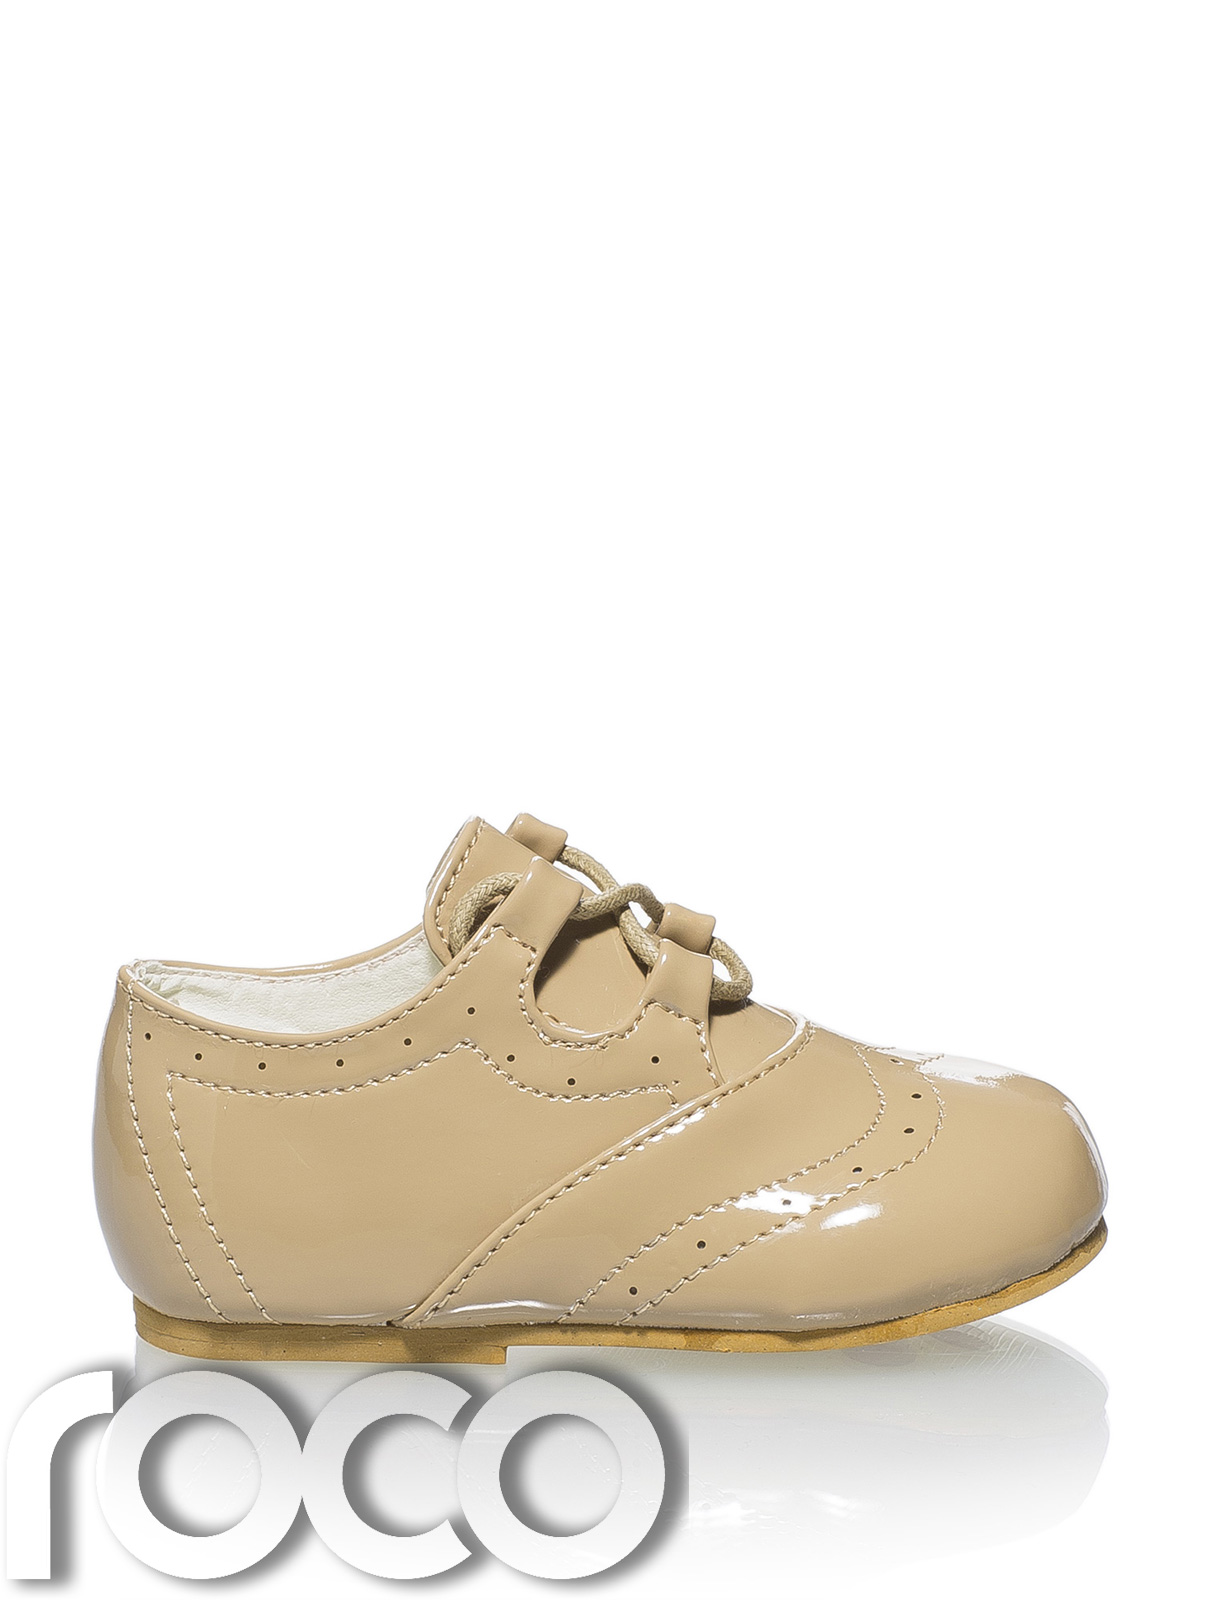 Baby Boys Camel Shoes Christening